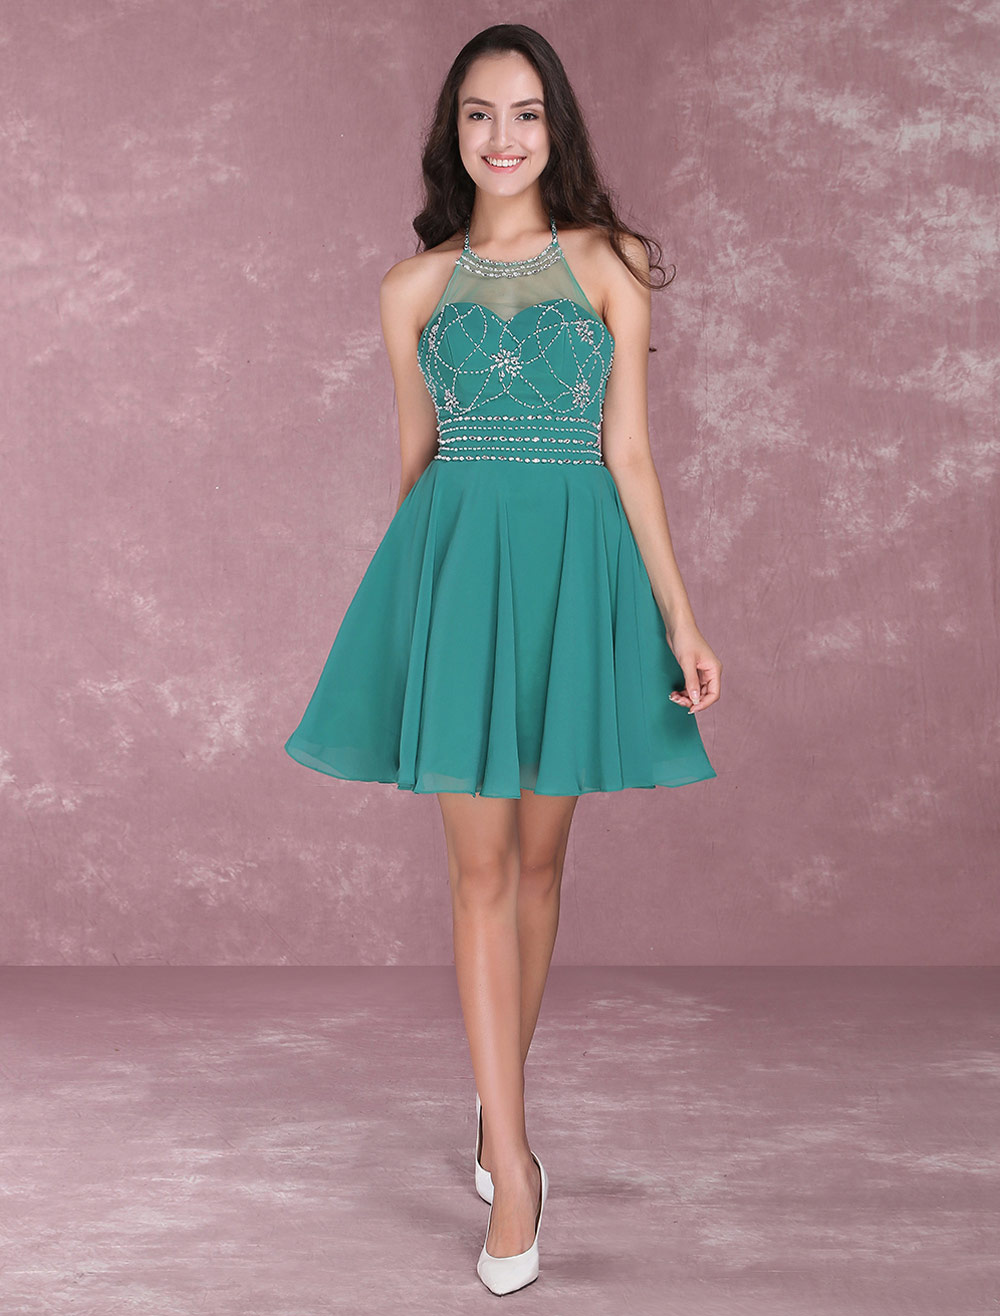 Short Homecoming Dresses Halter Backless Prom Dresses Beading Chiffon Dark Green Mini Cocktail Dress